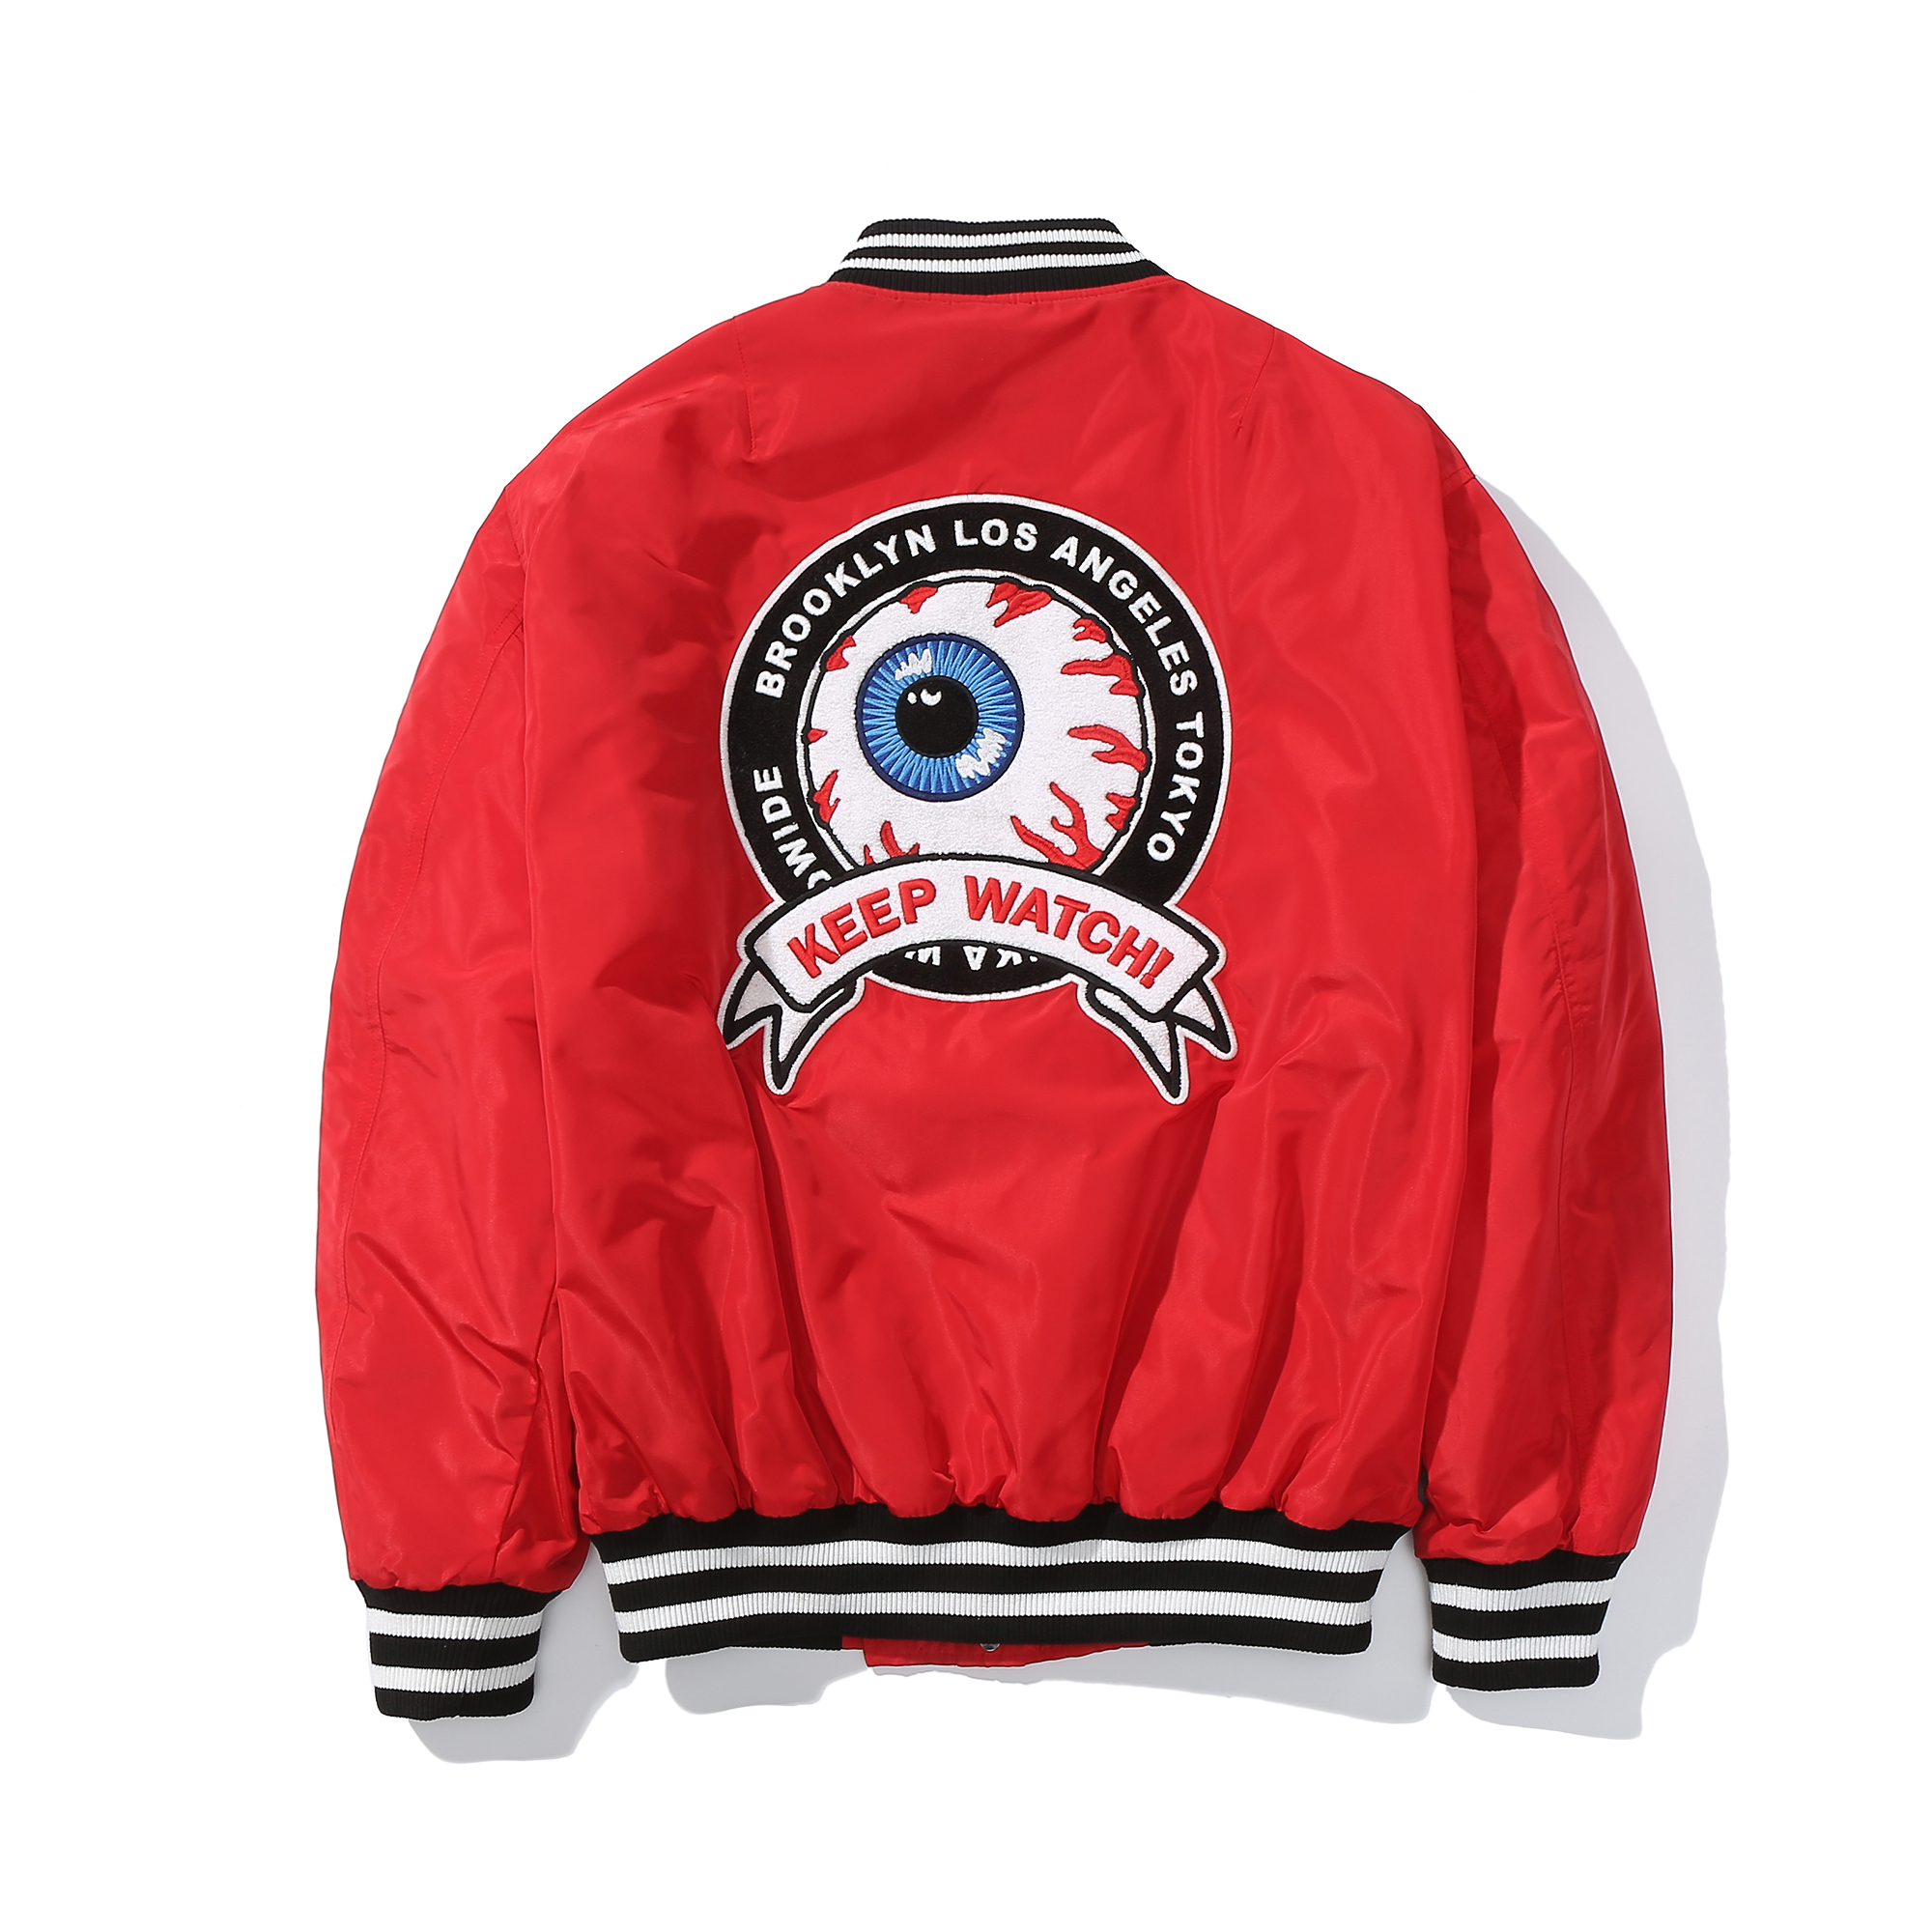 Keep Watch Coach's Jacket